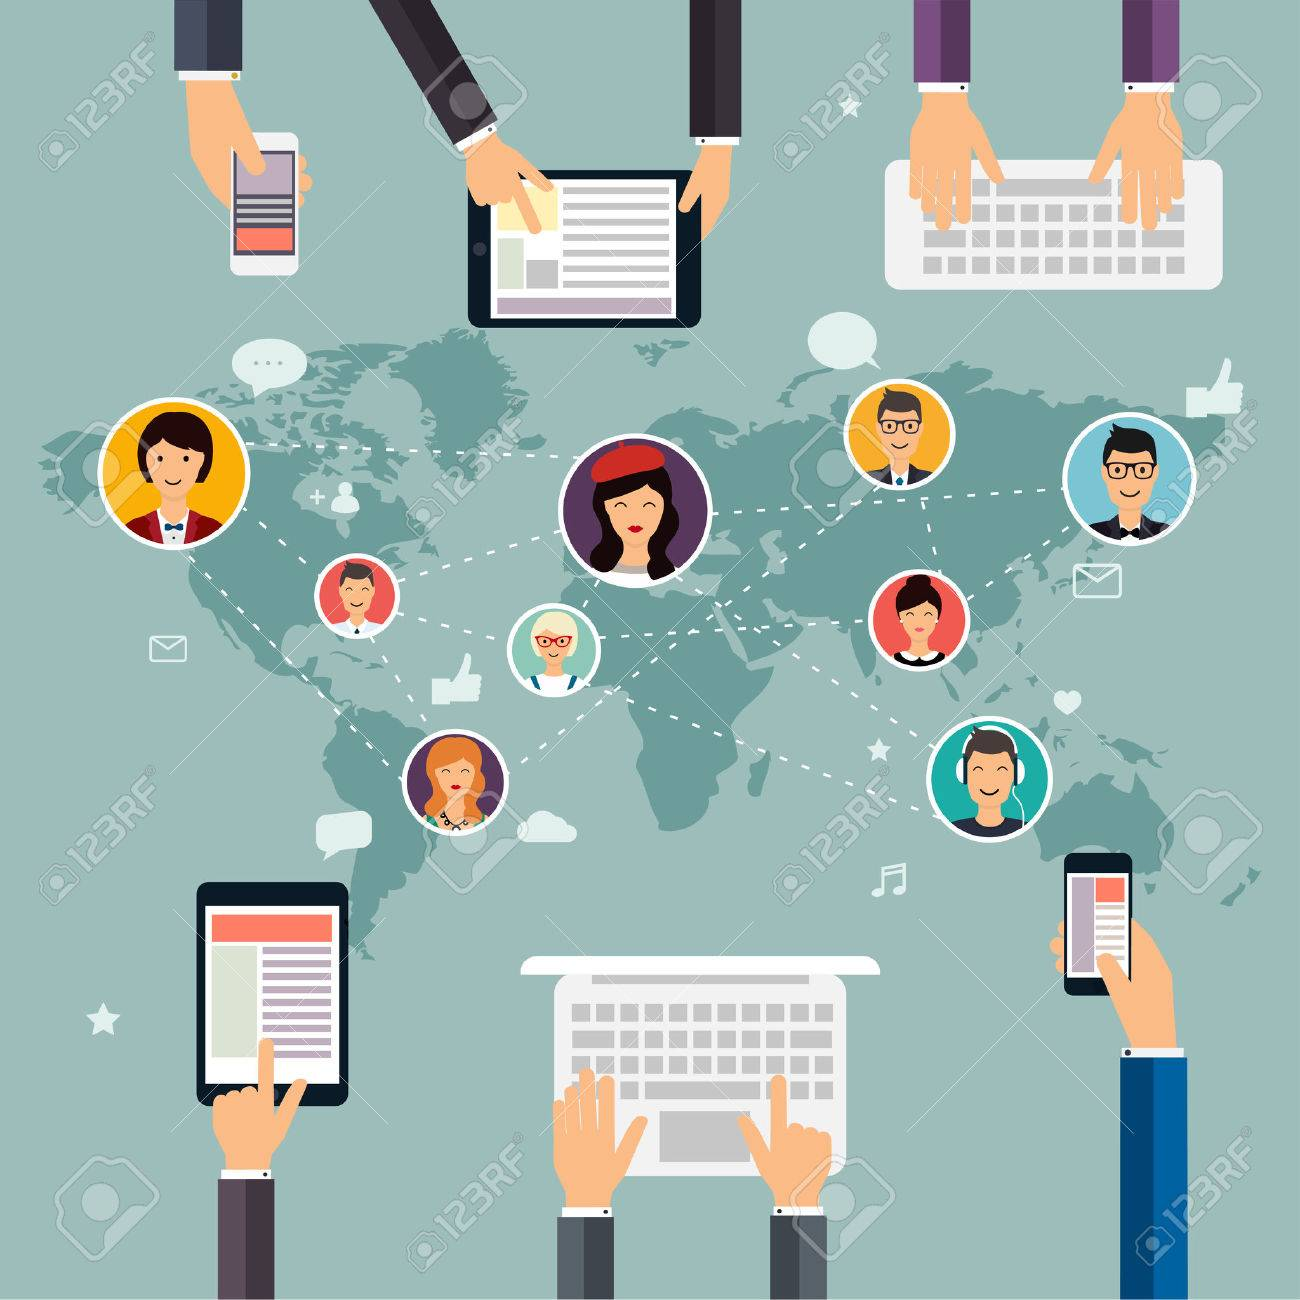 Social network and teamwork concept for web and info graphic. Set of people avatars and icons. Hands holding and using computer, tablet, laptop, smart phone. Communication Systems and Technologies. - 51019286